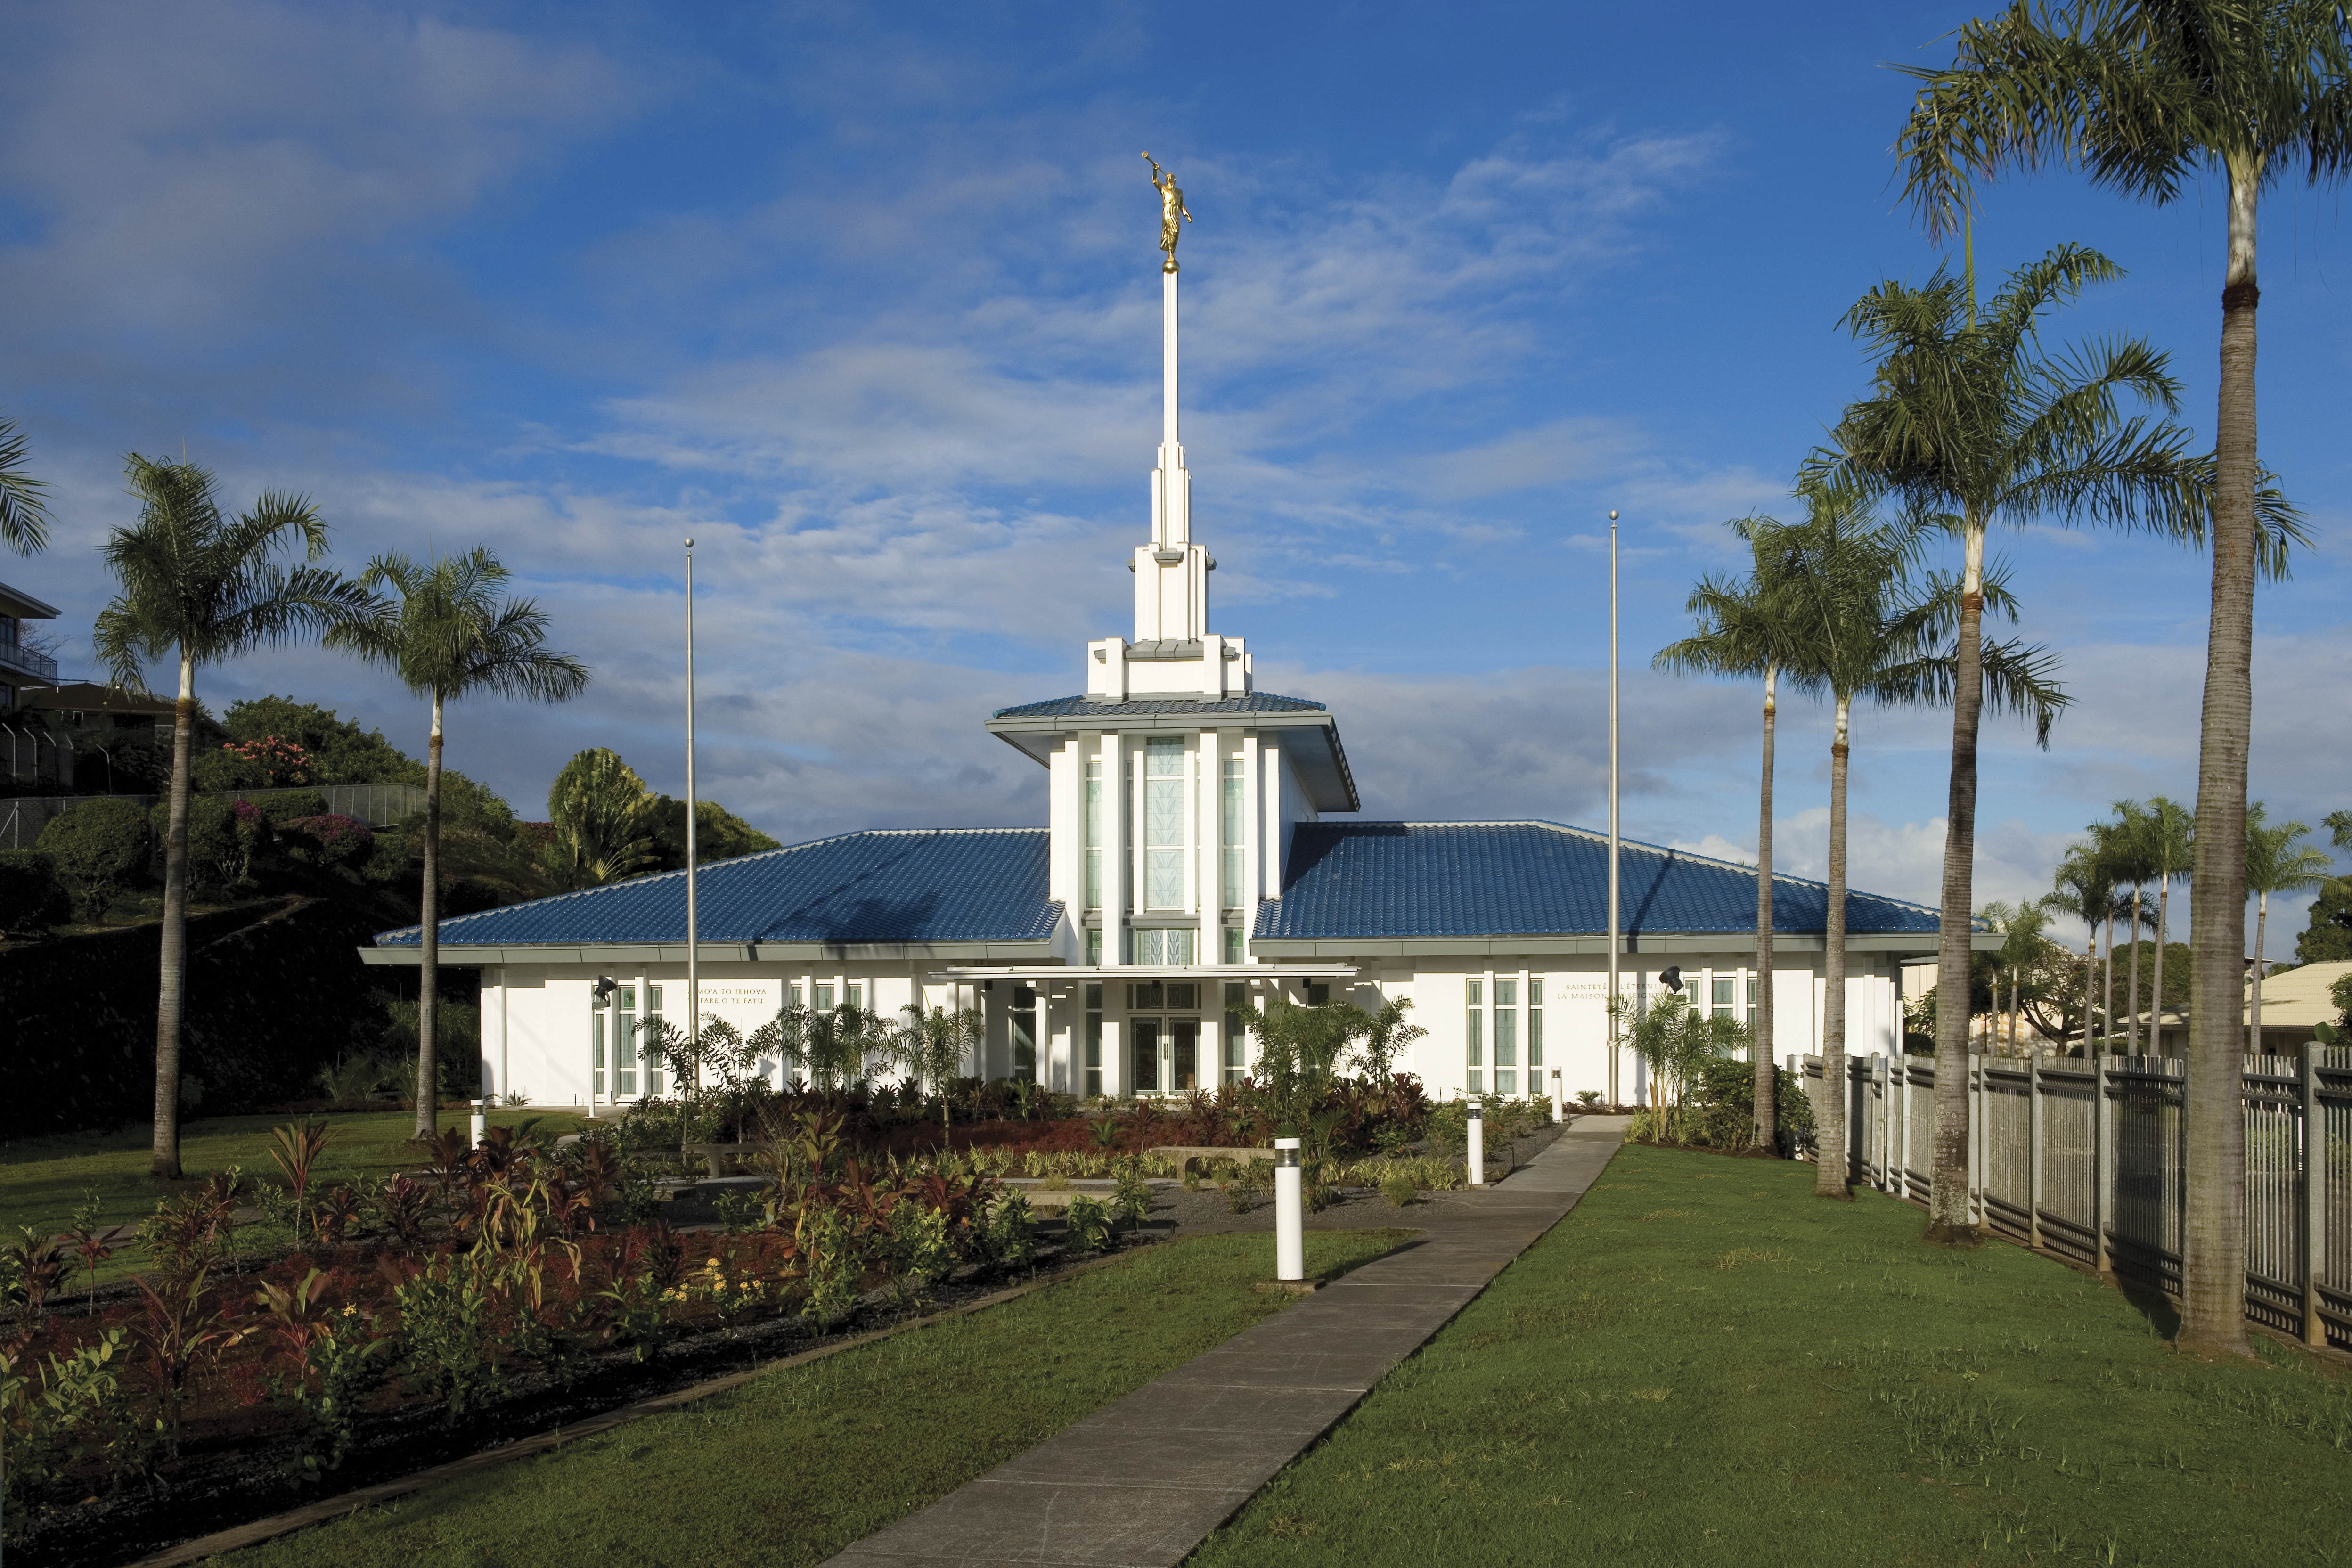 The Papeete Tahiti Temple, including the entrance and scenery.